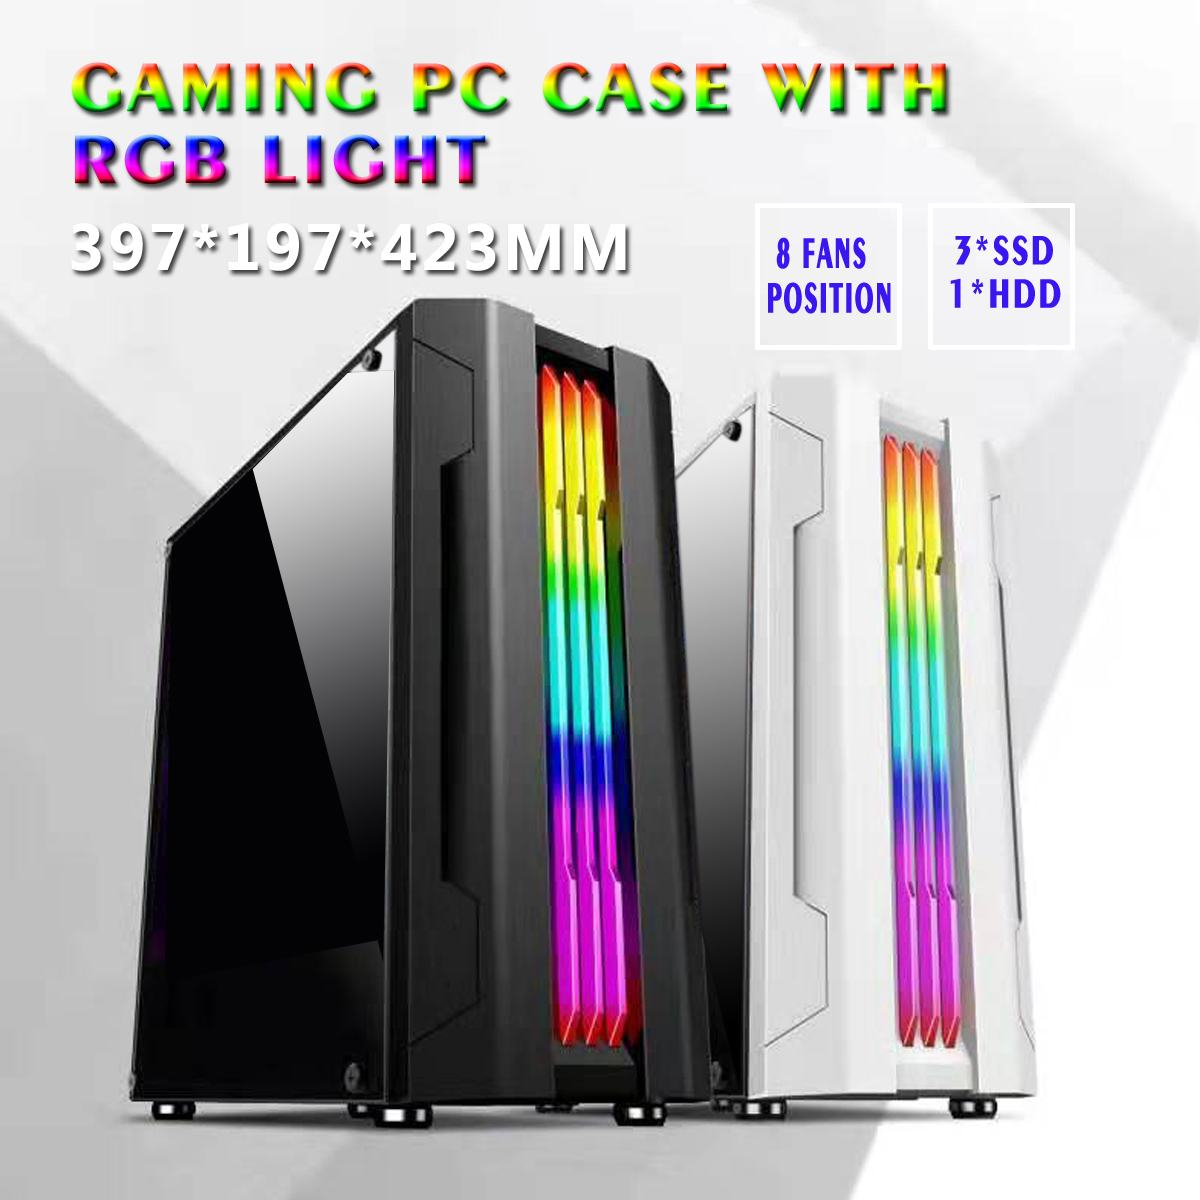 Electric Contest Pc Case 8 Fans with Rgb Light Acrylic Side Board 3SSD 1HDD ATX/MATX/ITX 280mm Graphics Card 397*197*423mm